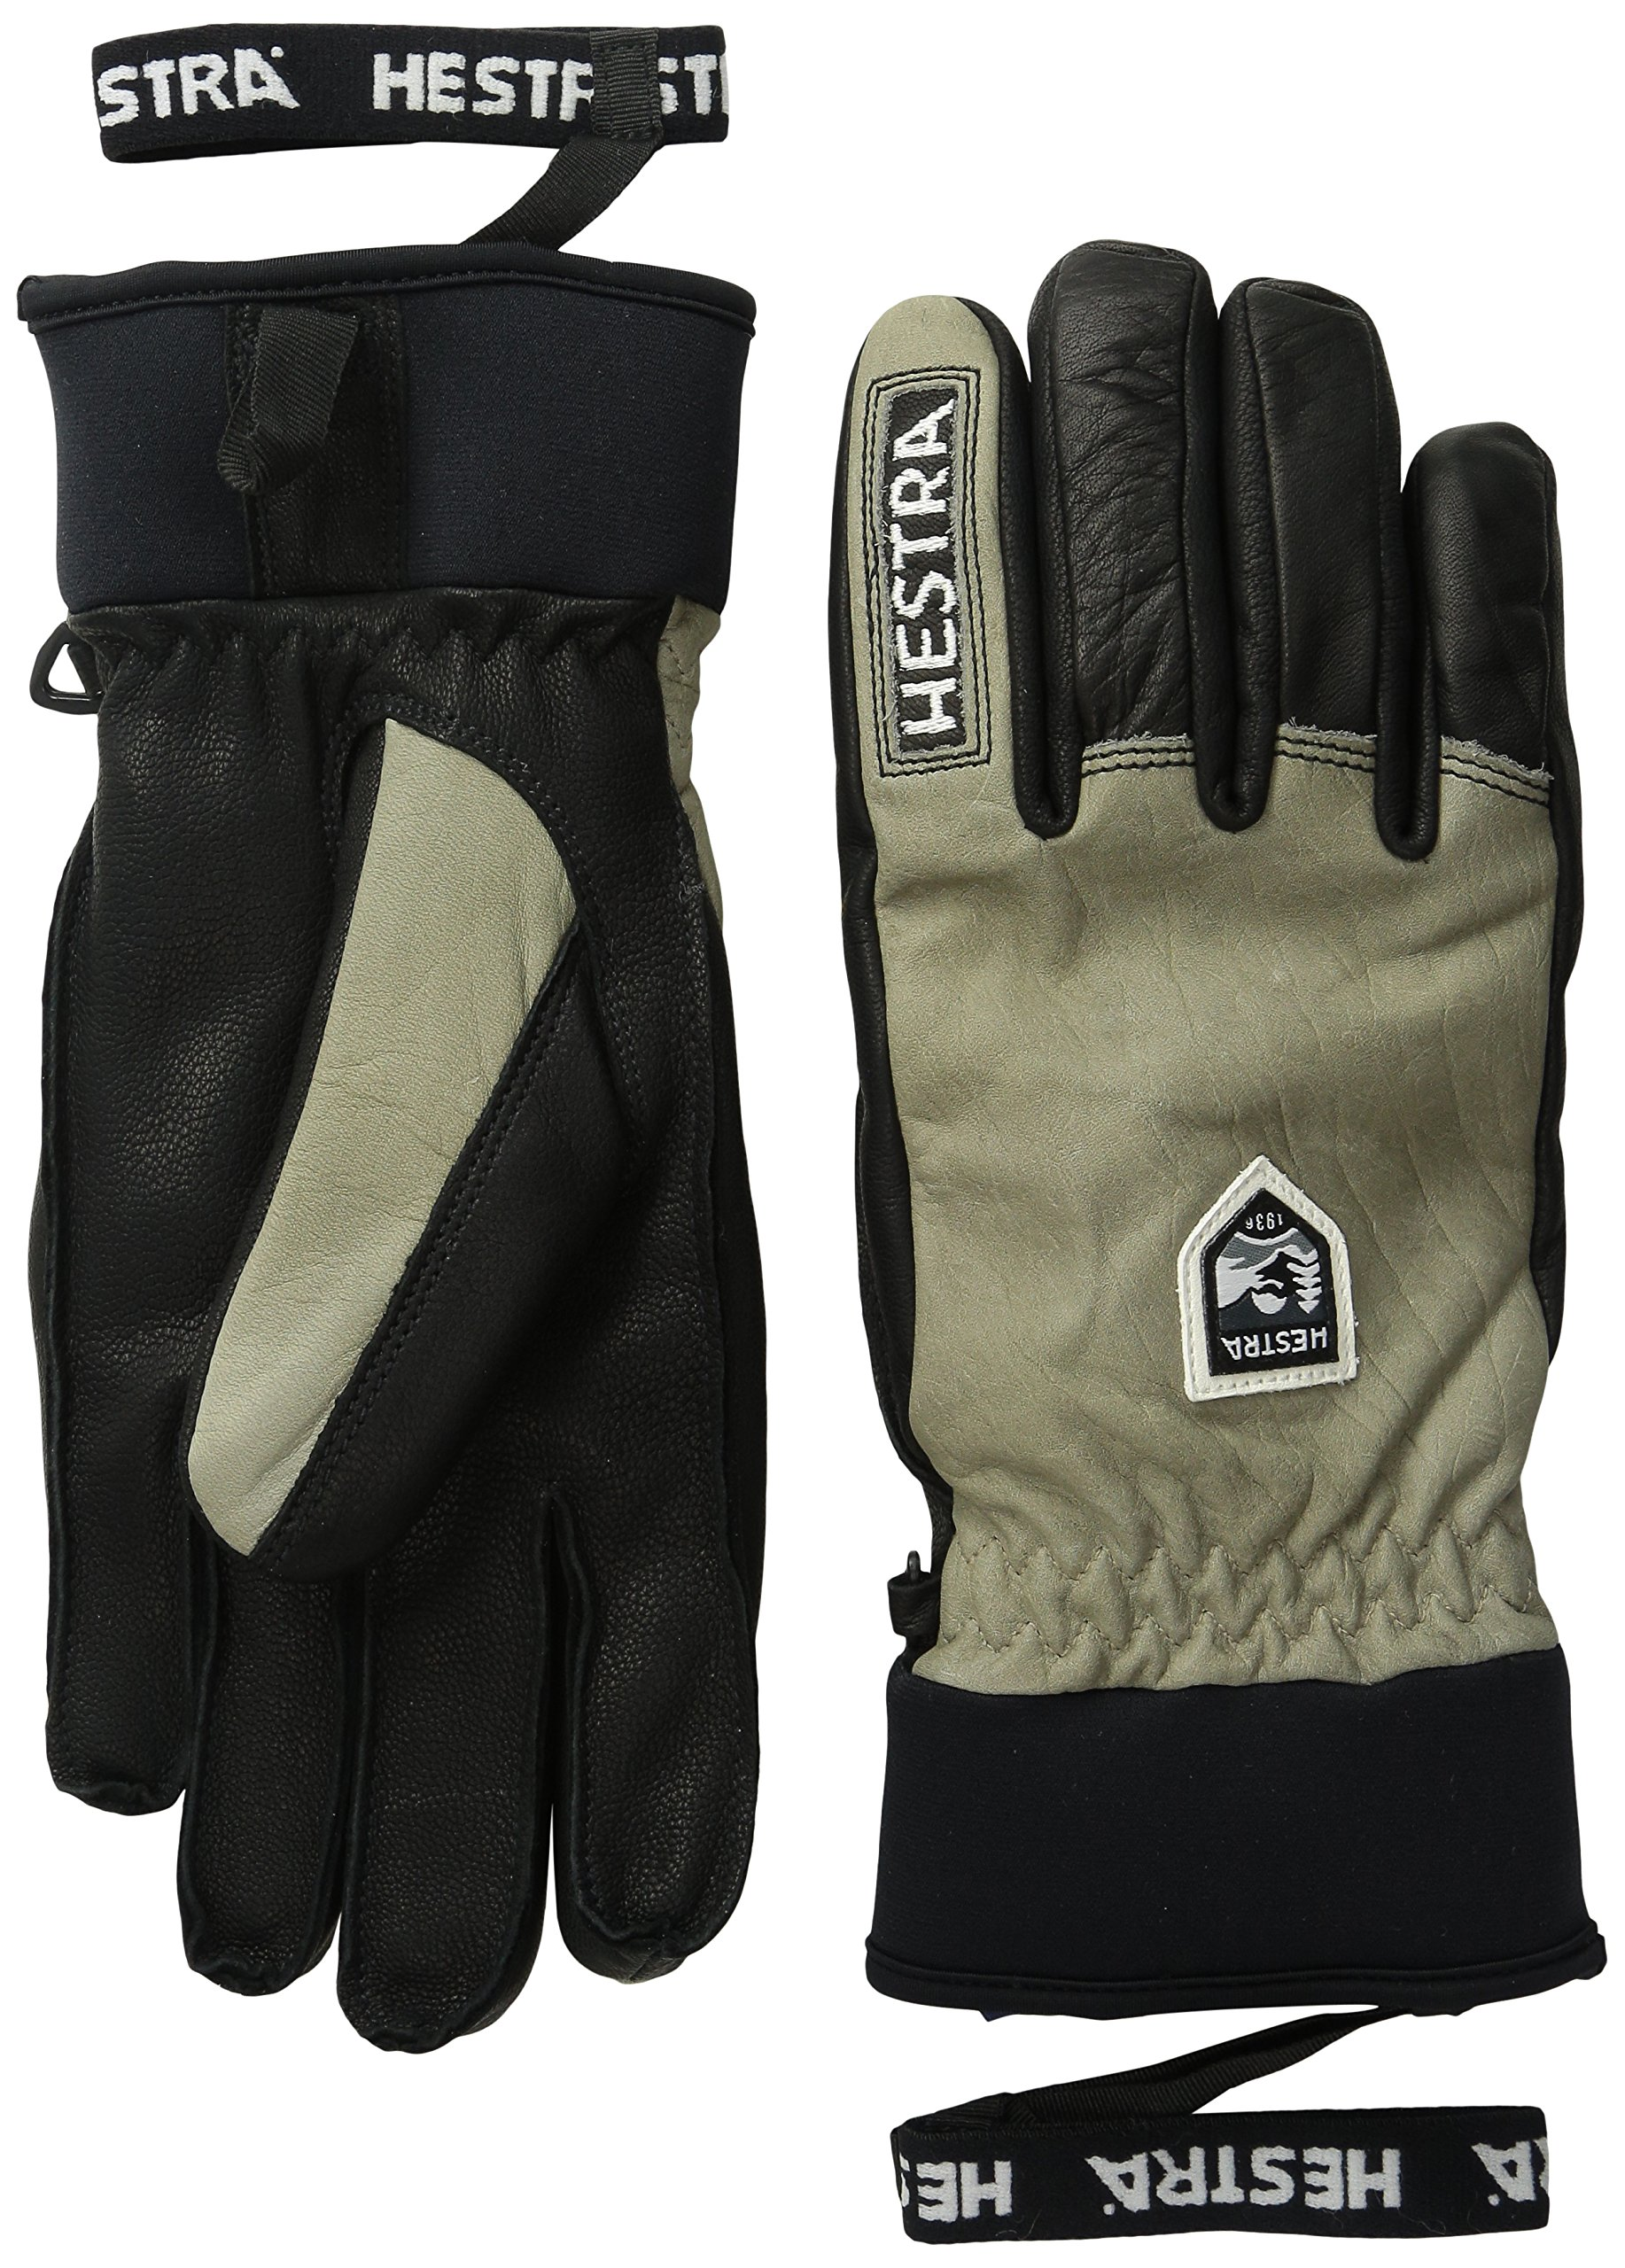 Hestra Army Leather Wool Gloves, Earth/Black, 8